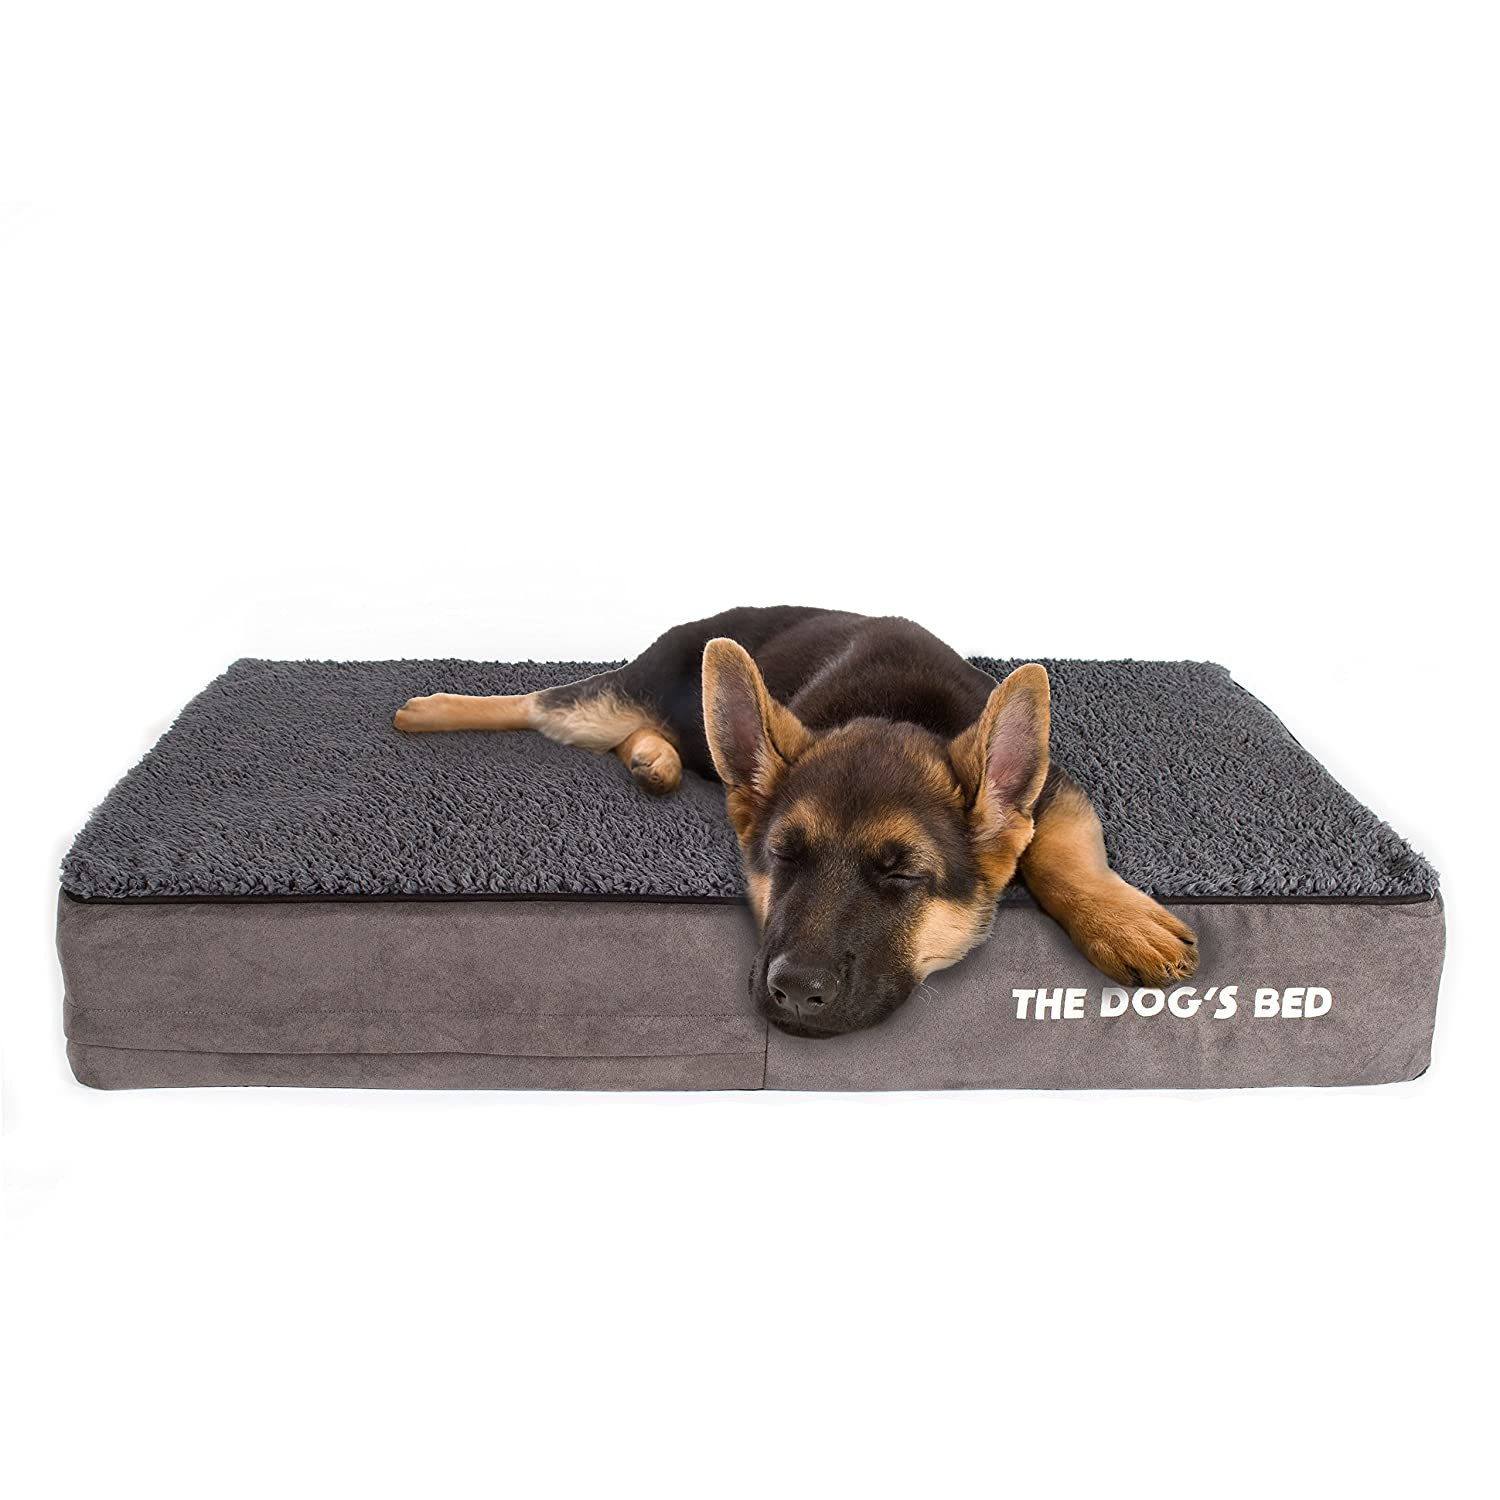 The Dog's Bed, Premium Plush Orthopedic Waterproof Memory Foam Dog bed - waterproof dog bed